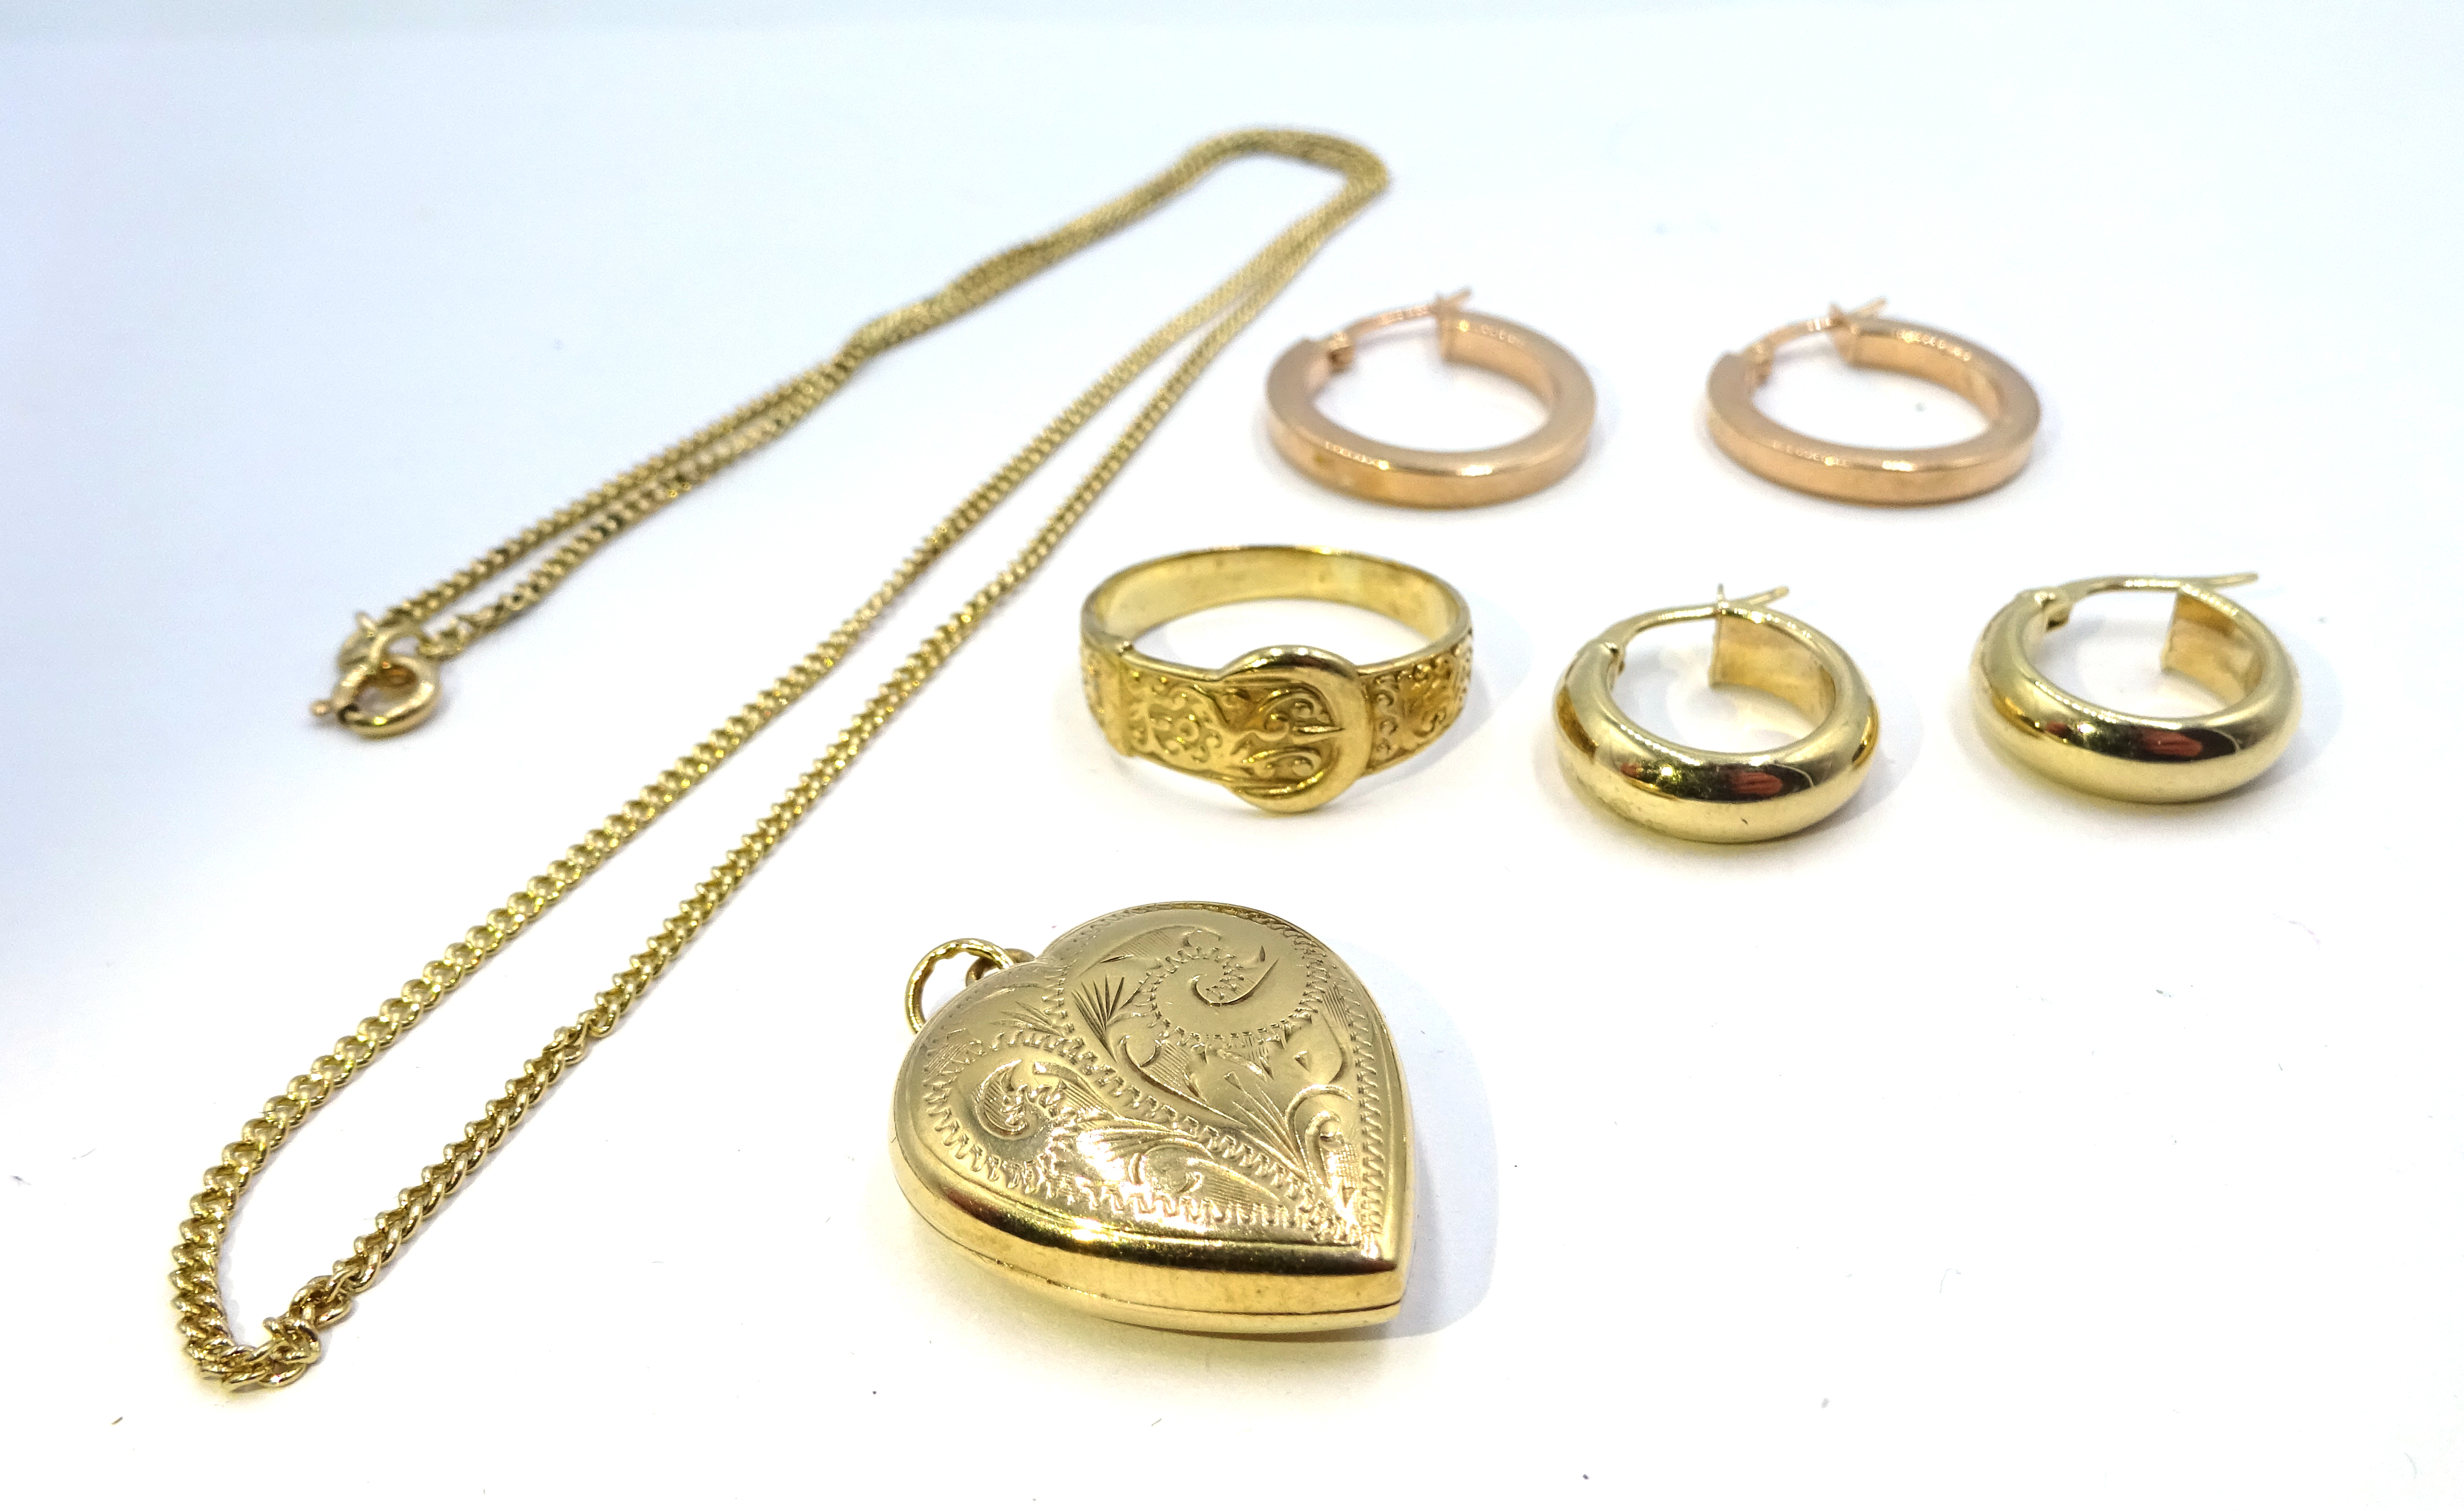 Lot 1029 - Two pairs of 9ct gold hoop earrings, 9ct gold ring and 9ct gold pendant necklace,